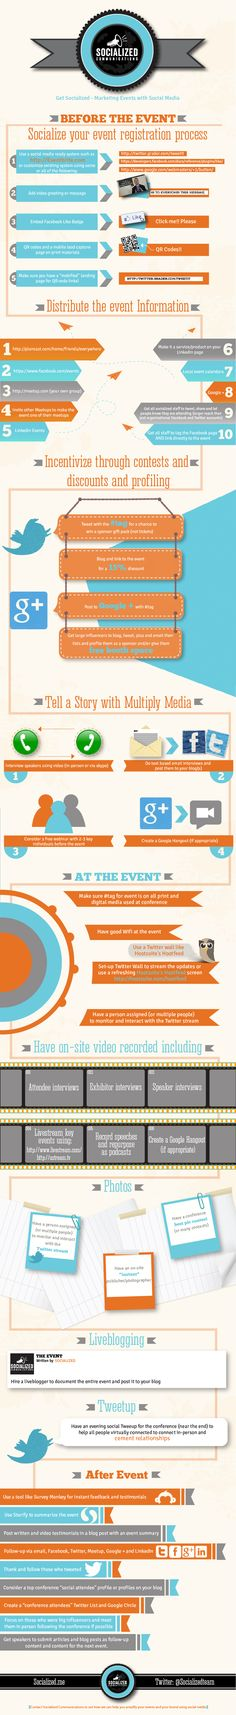 Get socialized marketing events with Social media #infographic